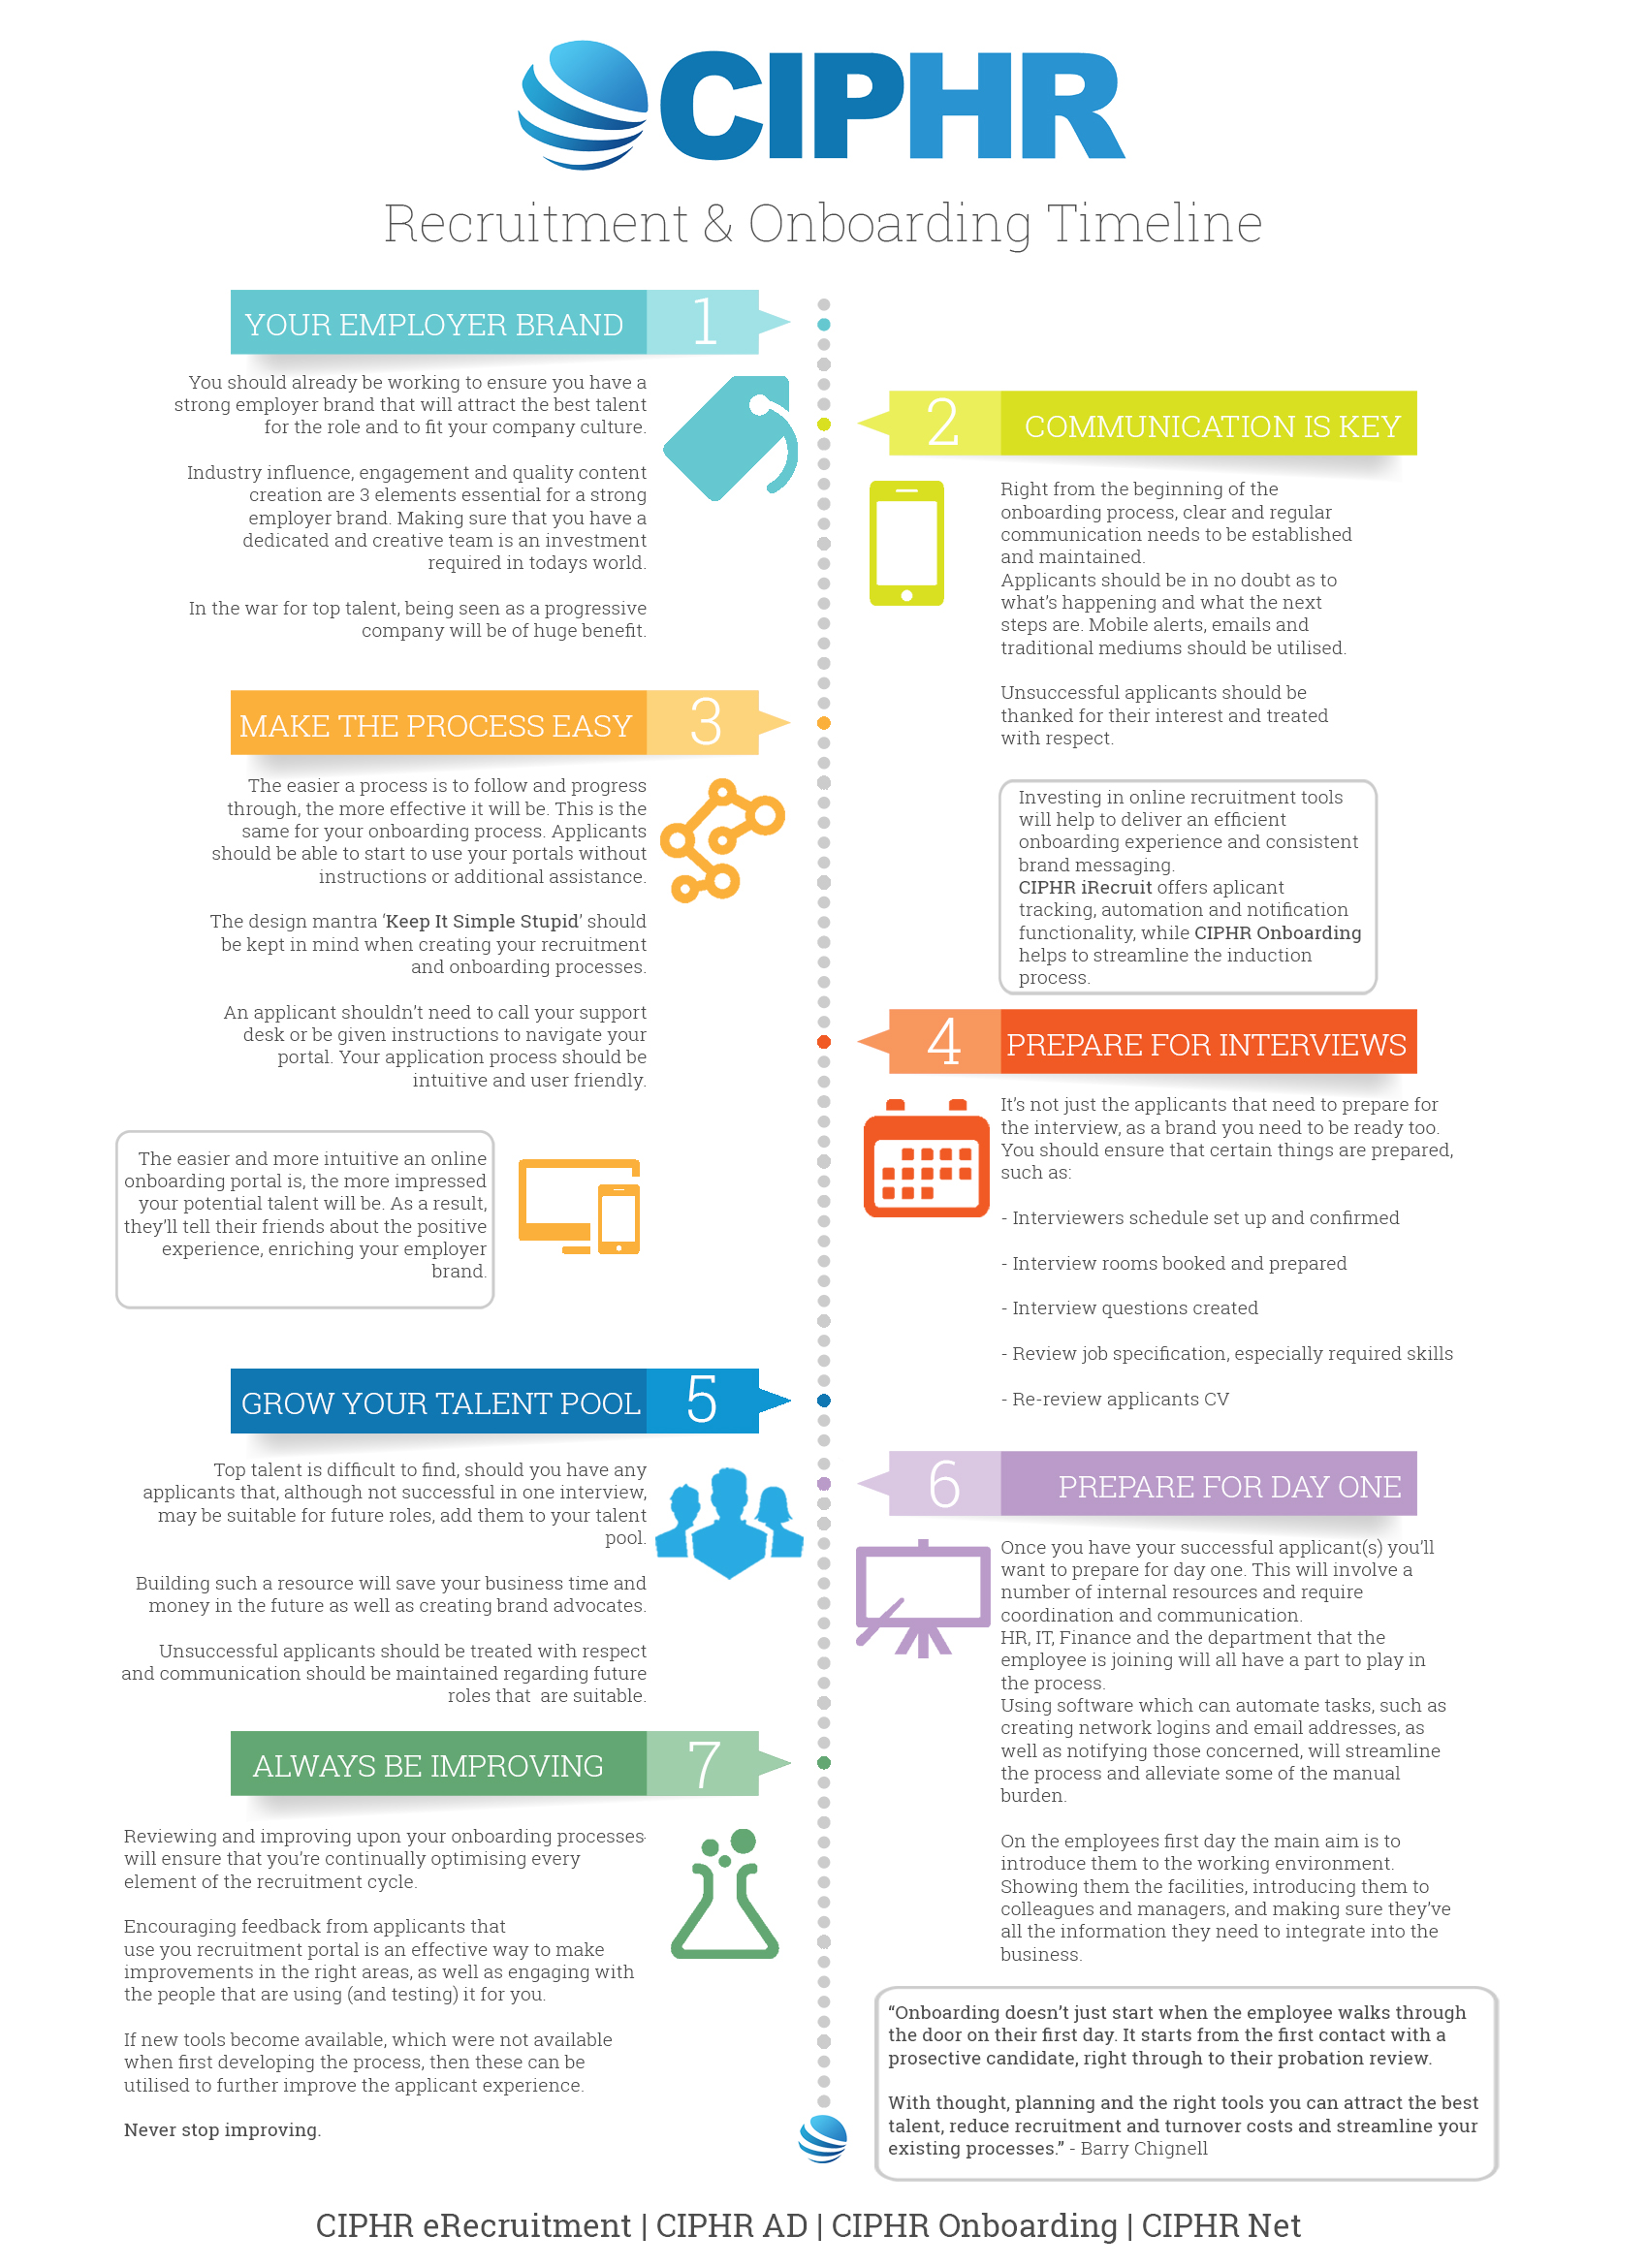 Onboarding-process-infographic